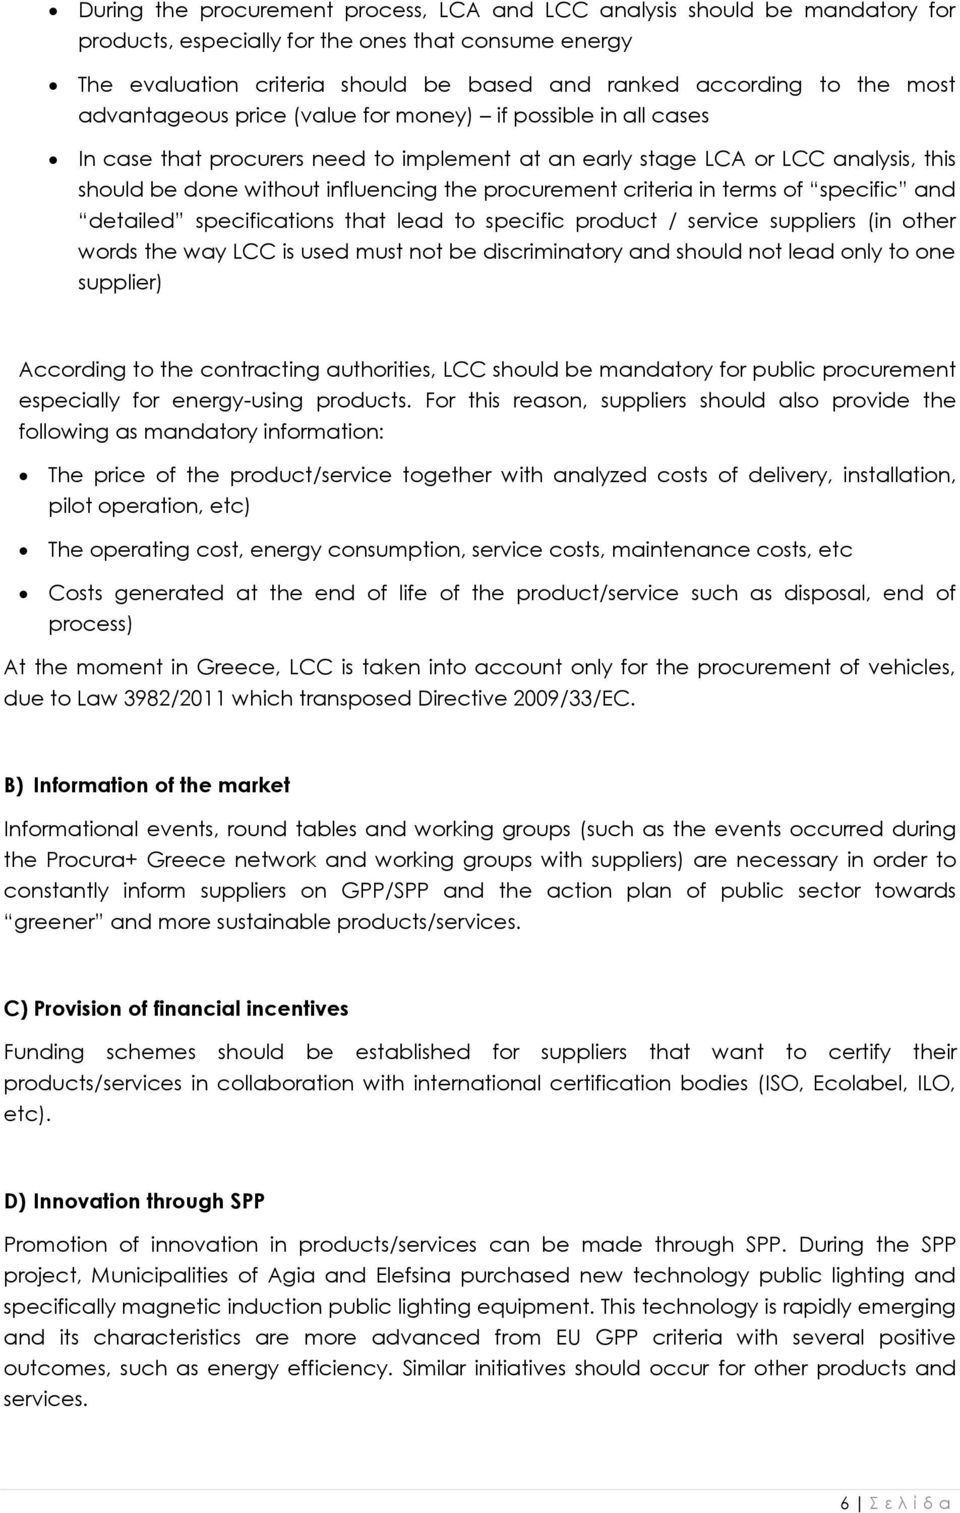 procurement criteria in terms of specific and detailed specifications that lead to specific product / service suppliers (in other words the way LCC is used must not be discriminatory and should not